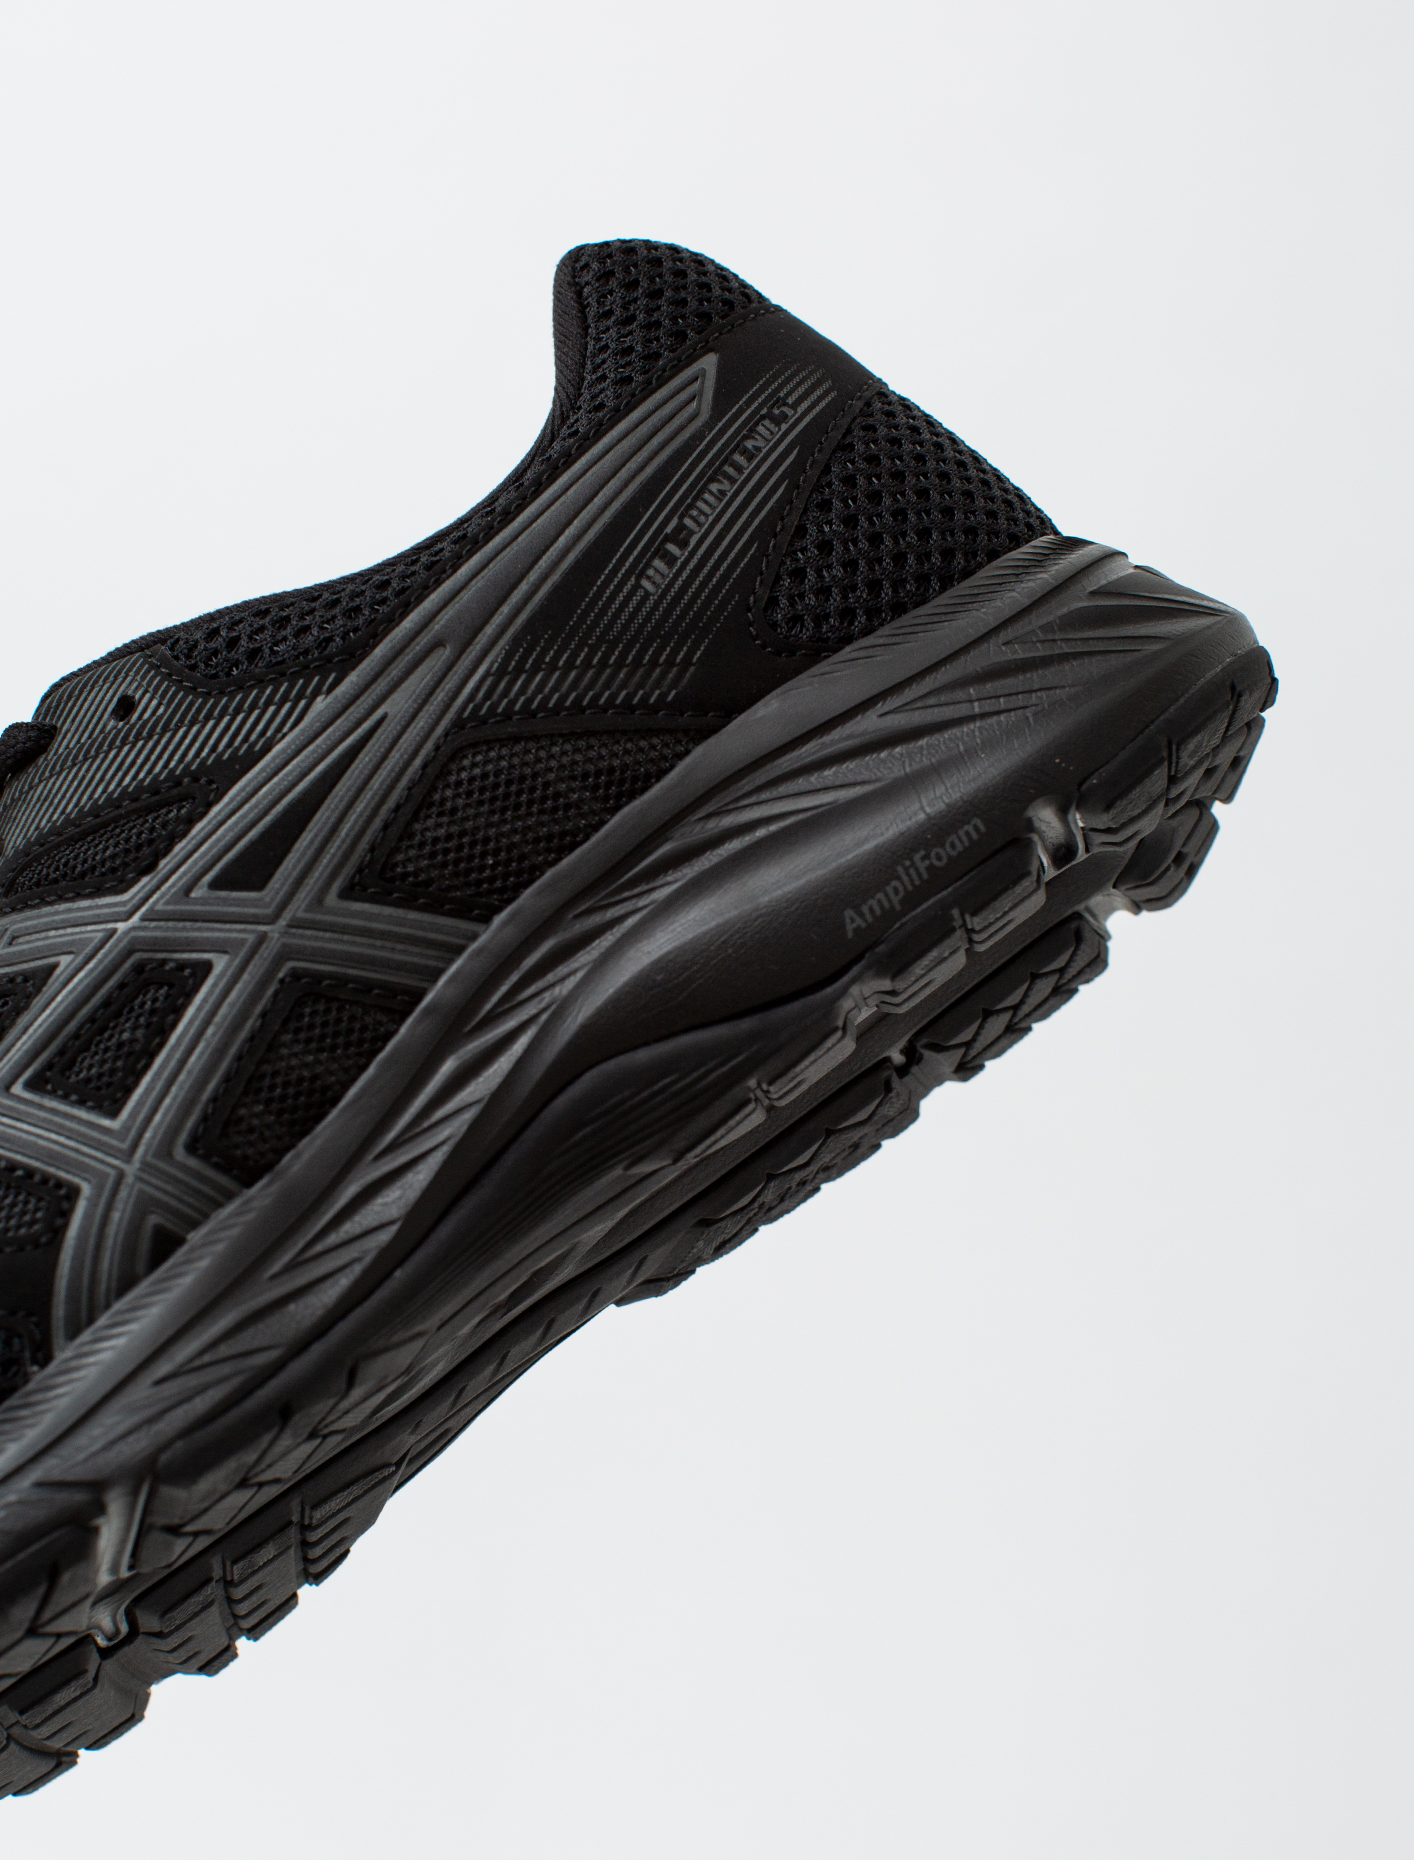 Athletic Shoes ASICS Gel-Contend 5 Men Black Running Trainers ...